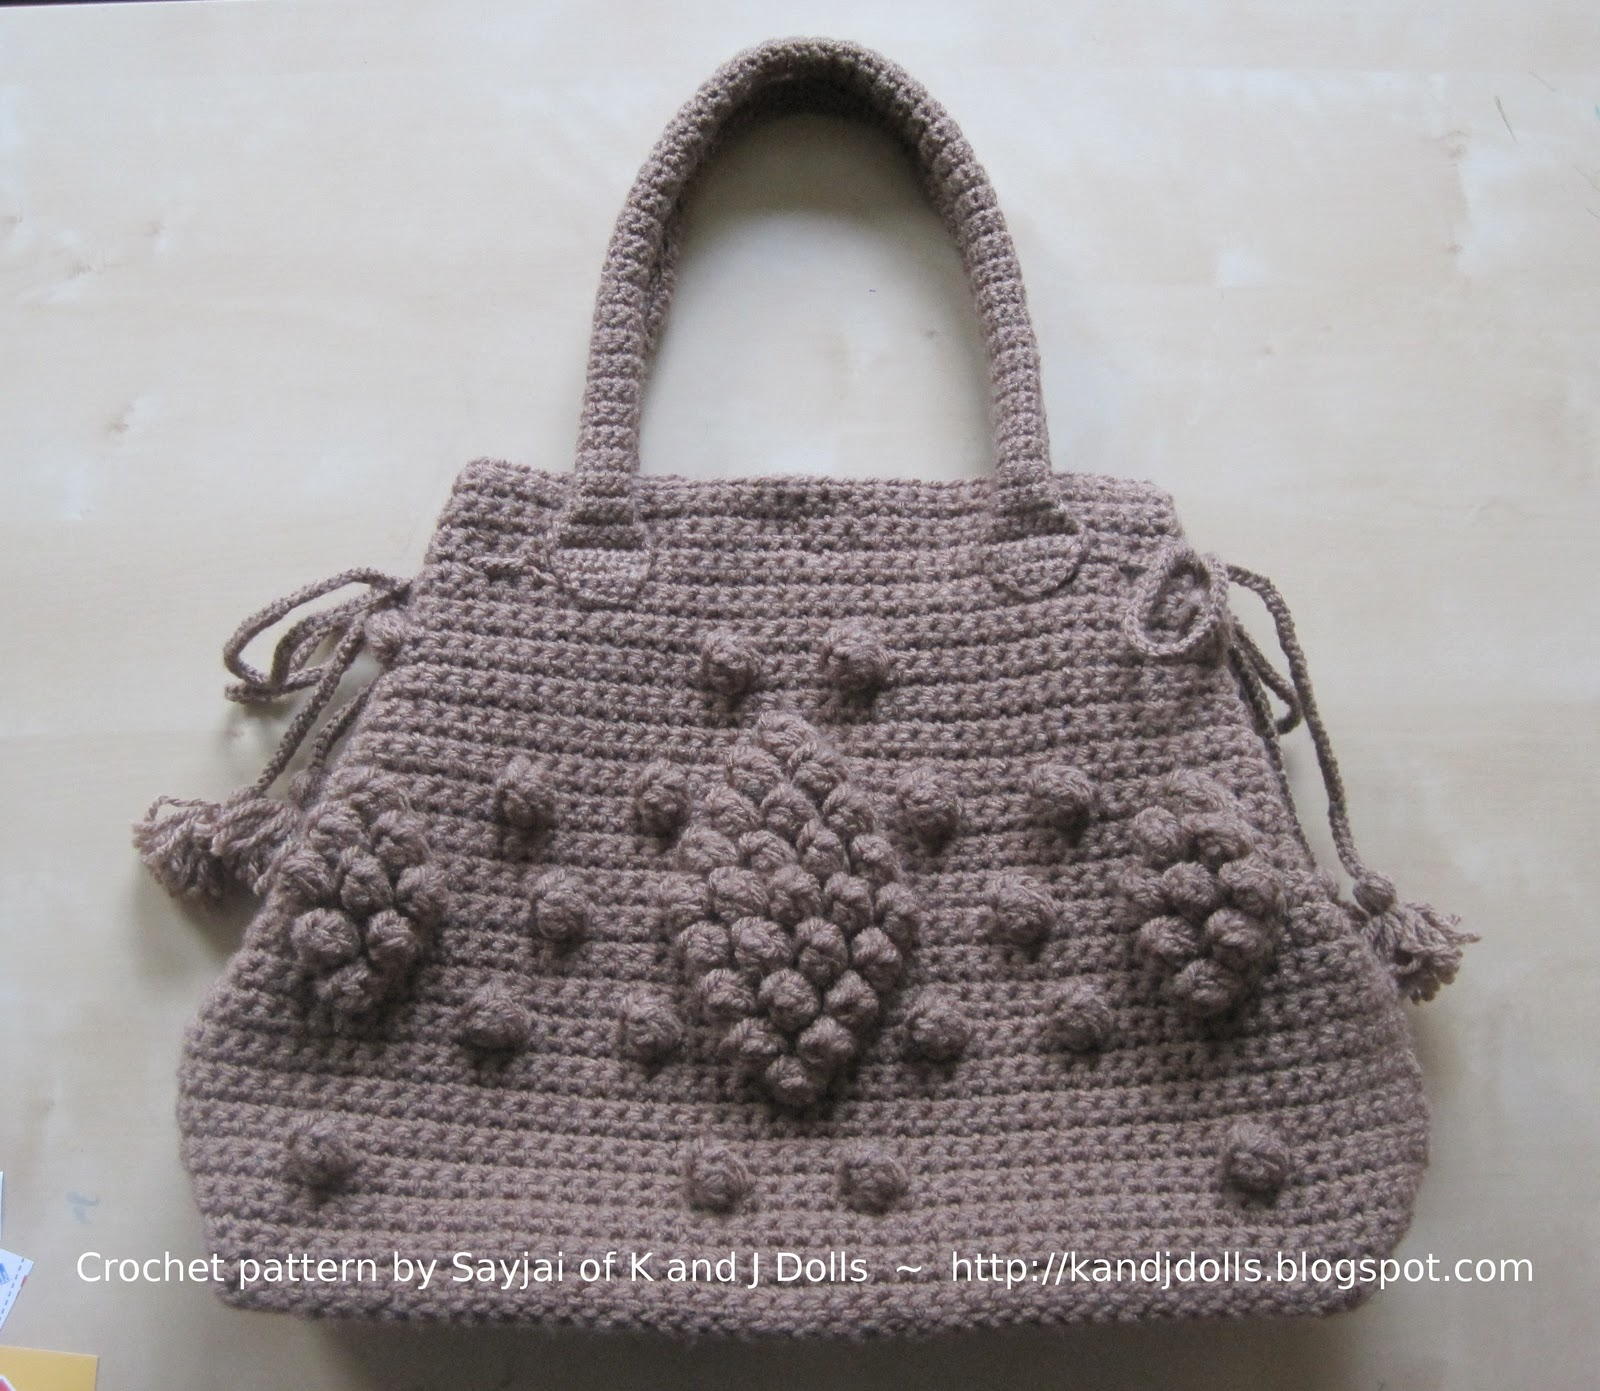 Crochet Tote Bag Free Pattern : Free Crochet Grocery Tote Bag Pattern